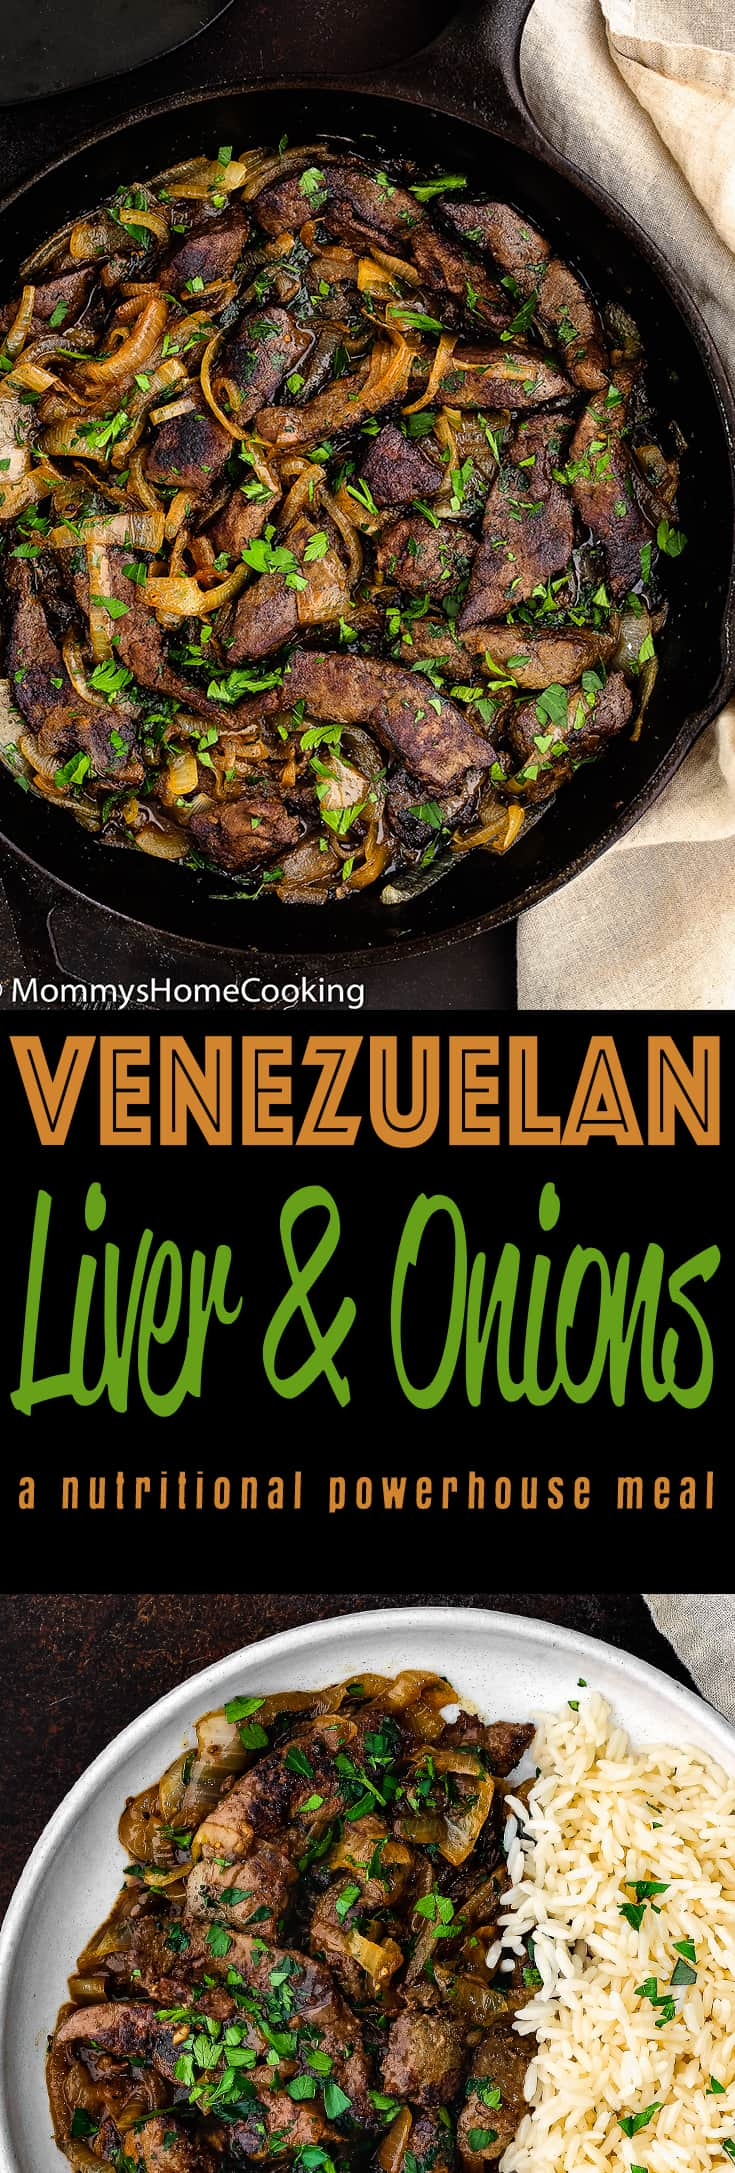 This Venezuelan Beef Liver and Onions is super flavorful and easy to make! Be a culinary adventurer and open your senses to this nutritional powerhouse meal. Plus, it's a fabulous alternative to your usual dinner rotation and budget-friendly. https://mommyshomecooking.com